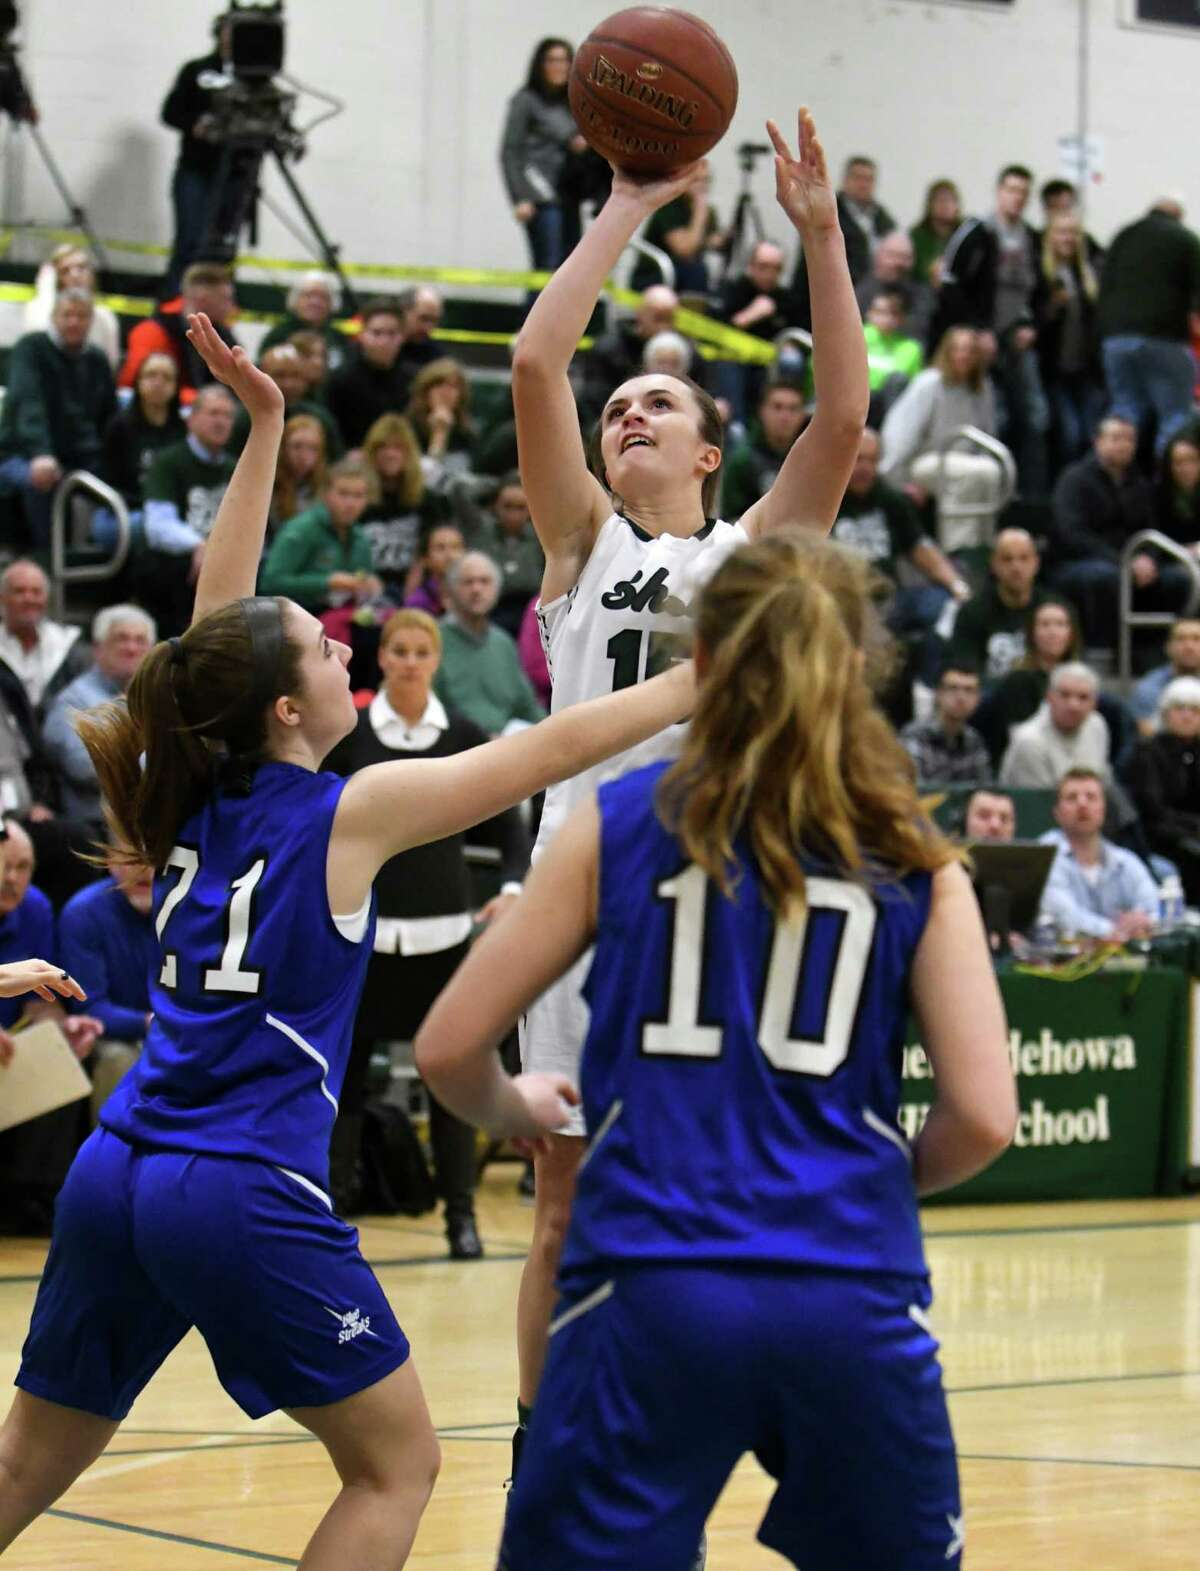 Shen's Megan Gillooley puts up a shot during their girl's high school basketball game against Saratoga on Wednesday Dec. 21, 2016 in Clifton Park, N.Y. (Michael P. Farrell/Times Union)